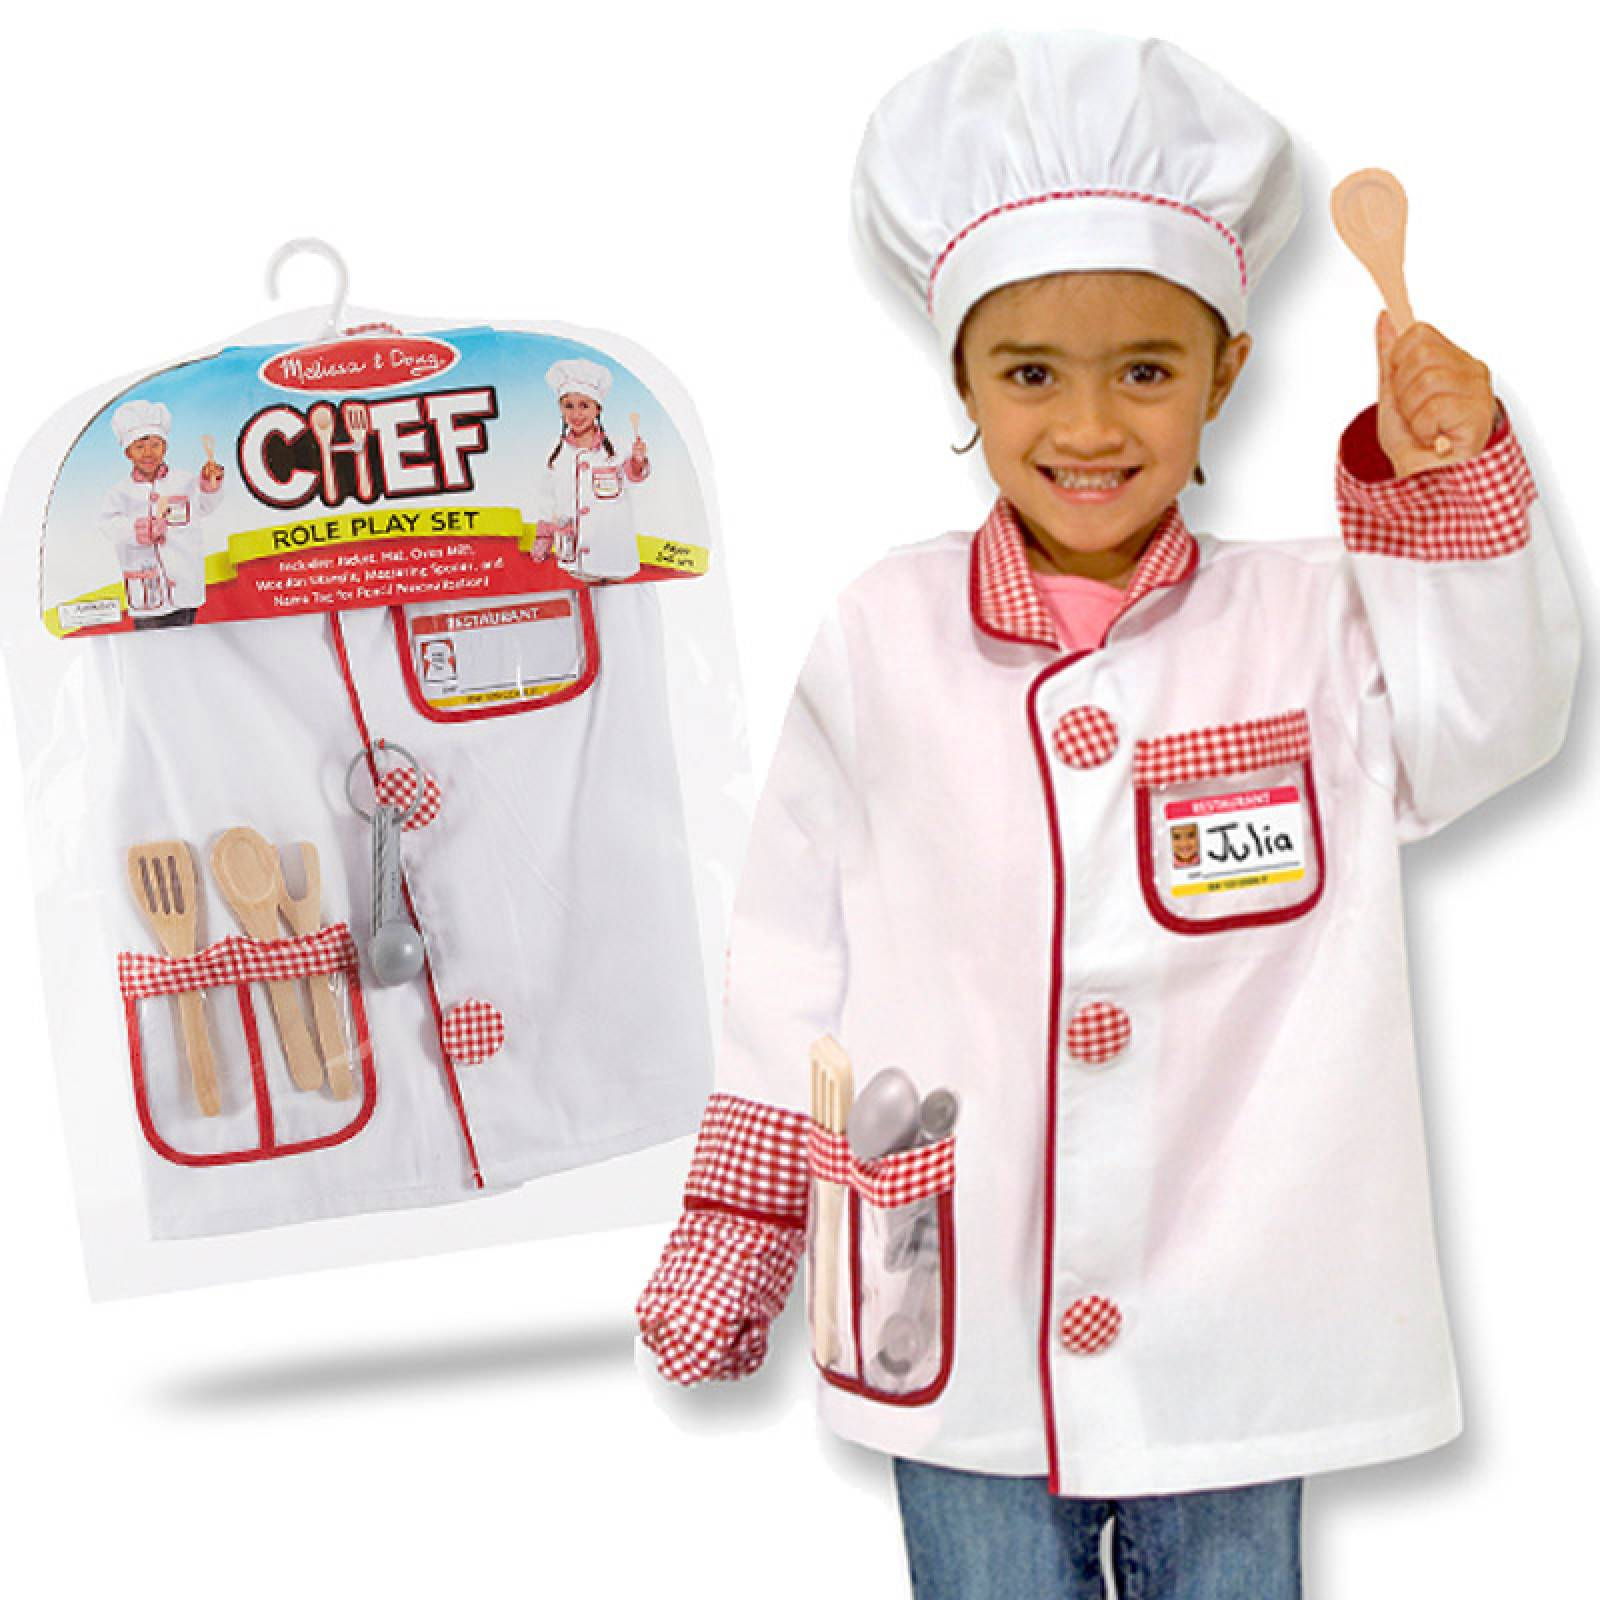 Fancy Dress Role Play Costume Set - Chef thumbnails